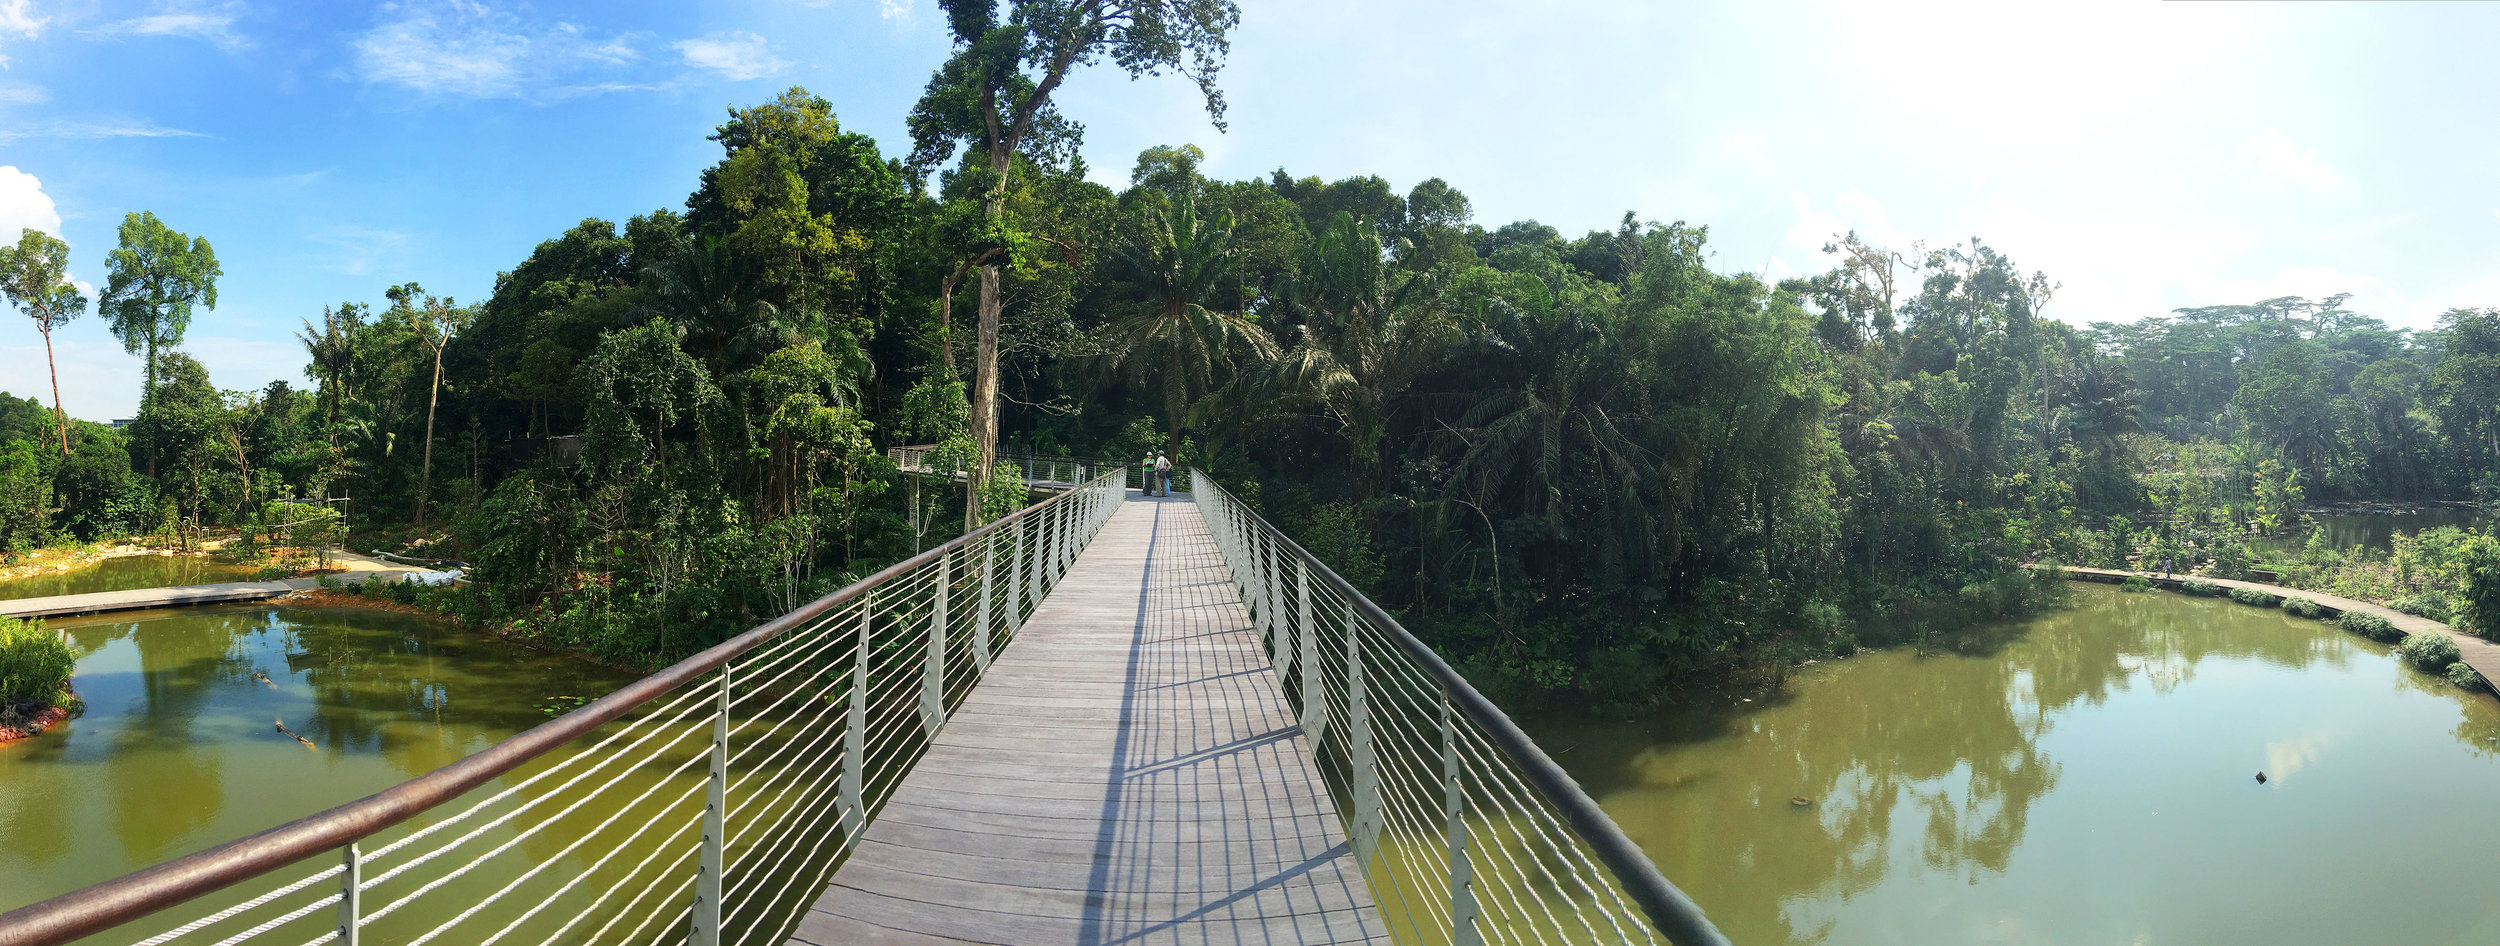 Panoramic view on Wetlands Elevated Boardwalk. Photo by SCLD